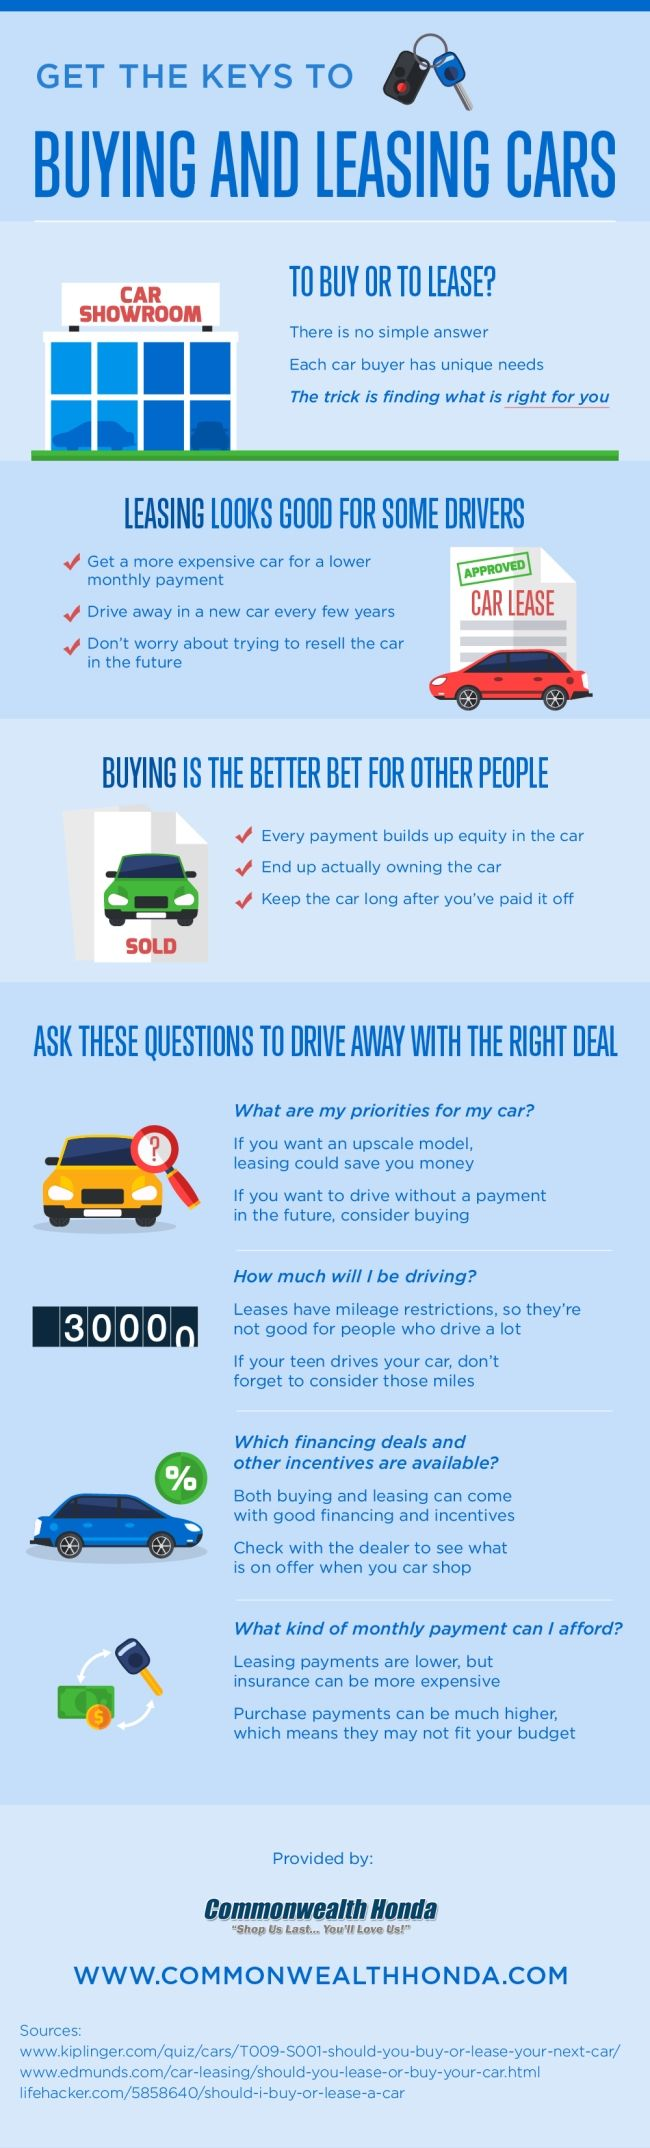 Used car dealer in concord nc serving charlotte gastonia html autos - Find This Pin And More On Car And Automotive Infographics